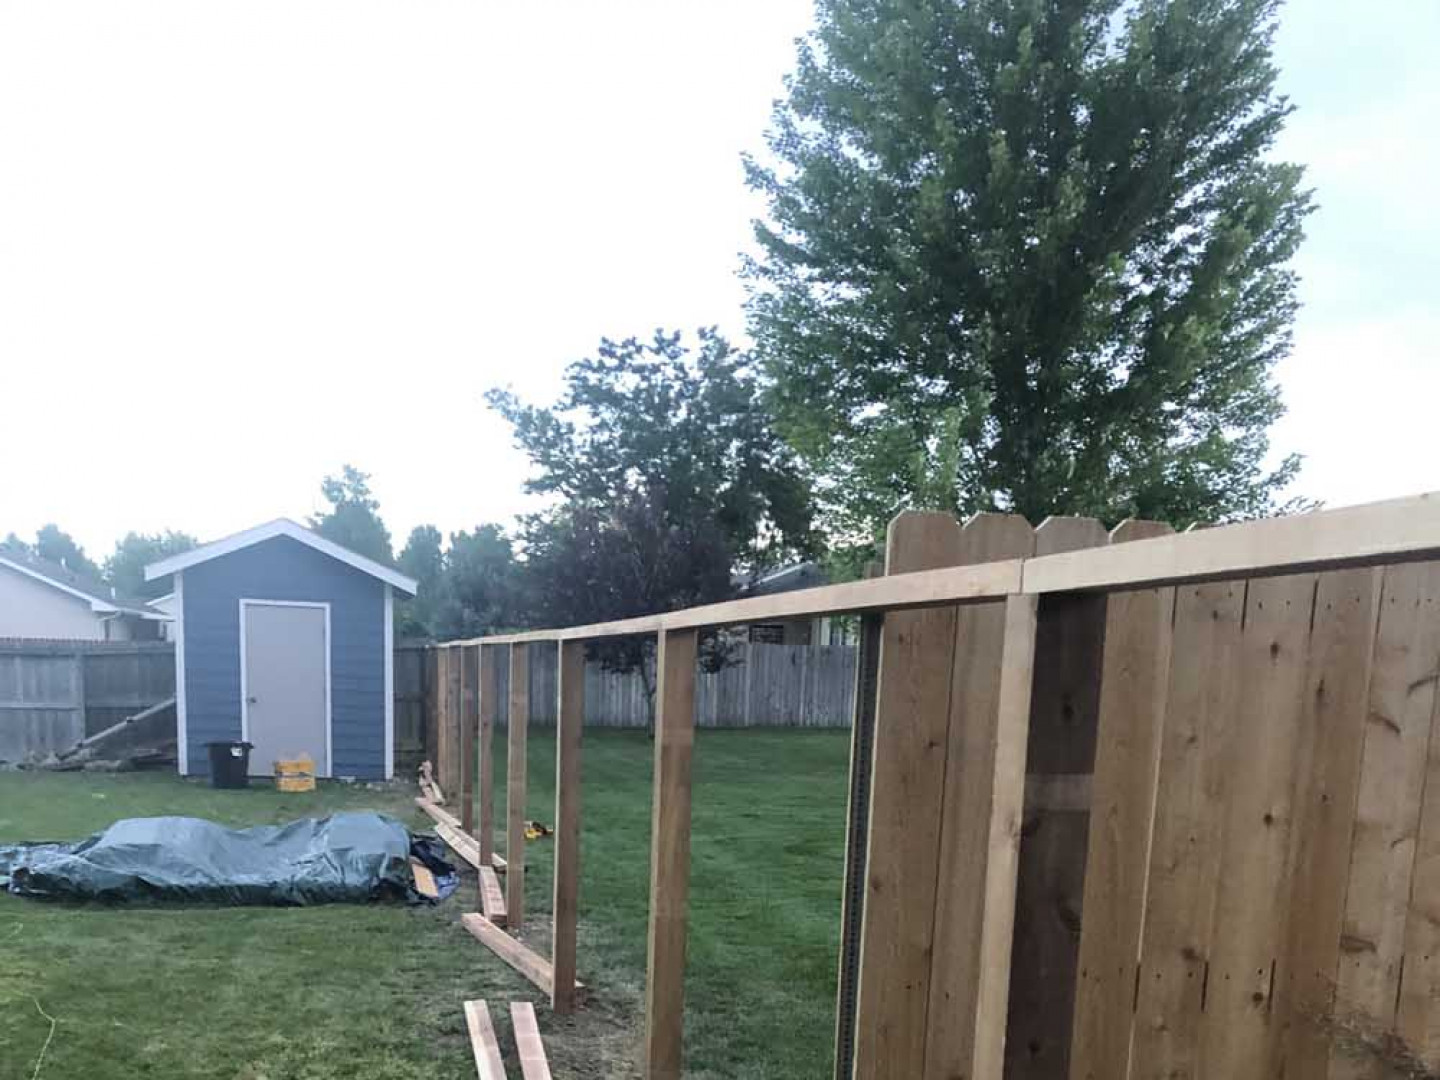 Don't Let Your Old Fence Turn Into a Safety Hazard